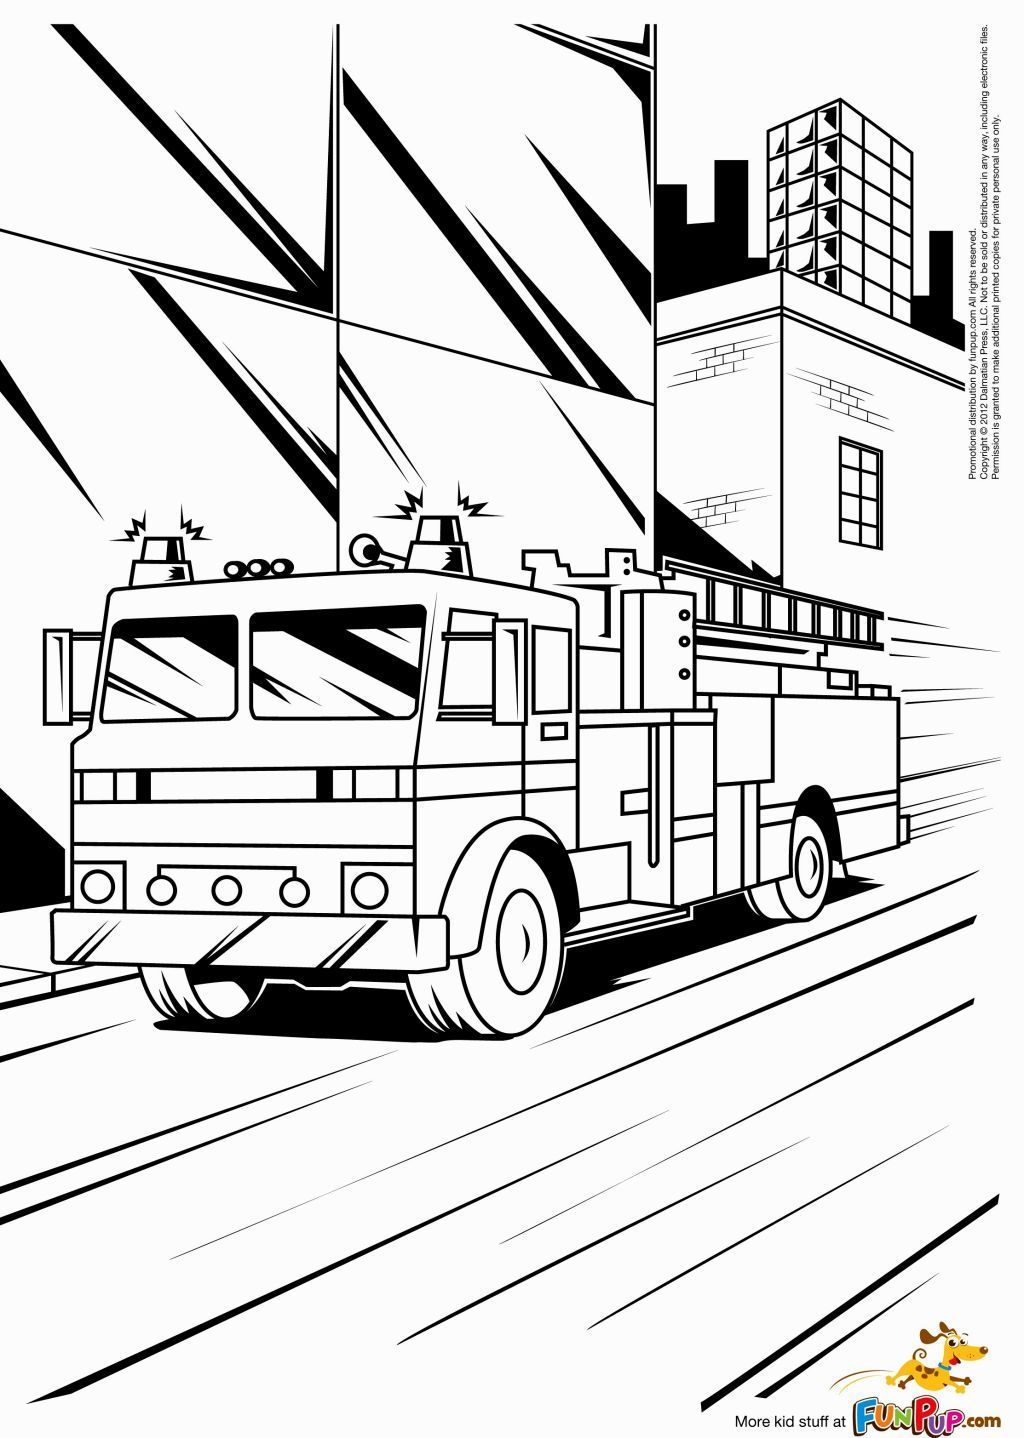 Coloring Fire Truck | Coloring Pages | Pinterest | Fire trucks